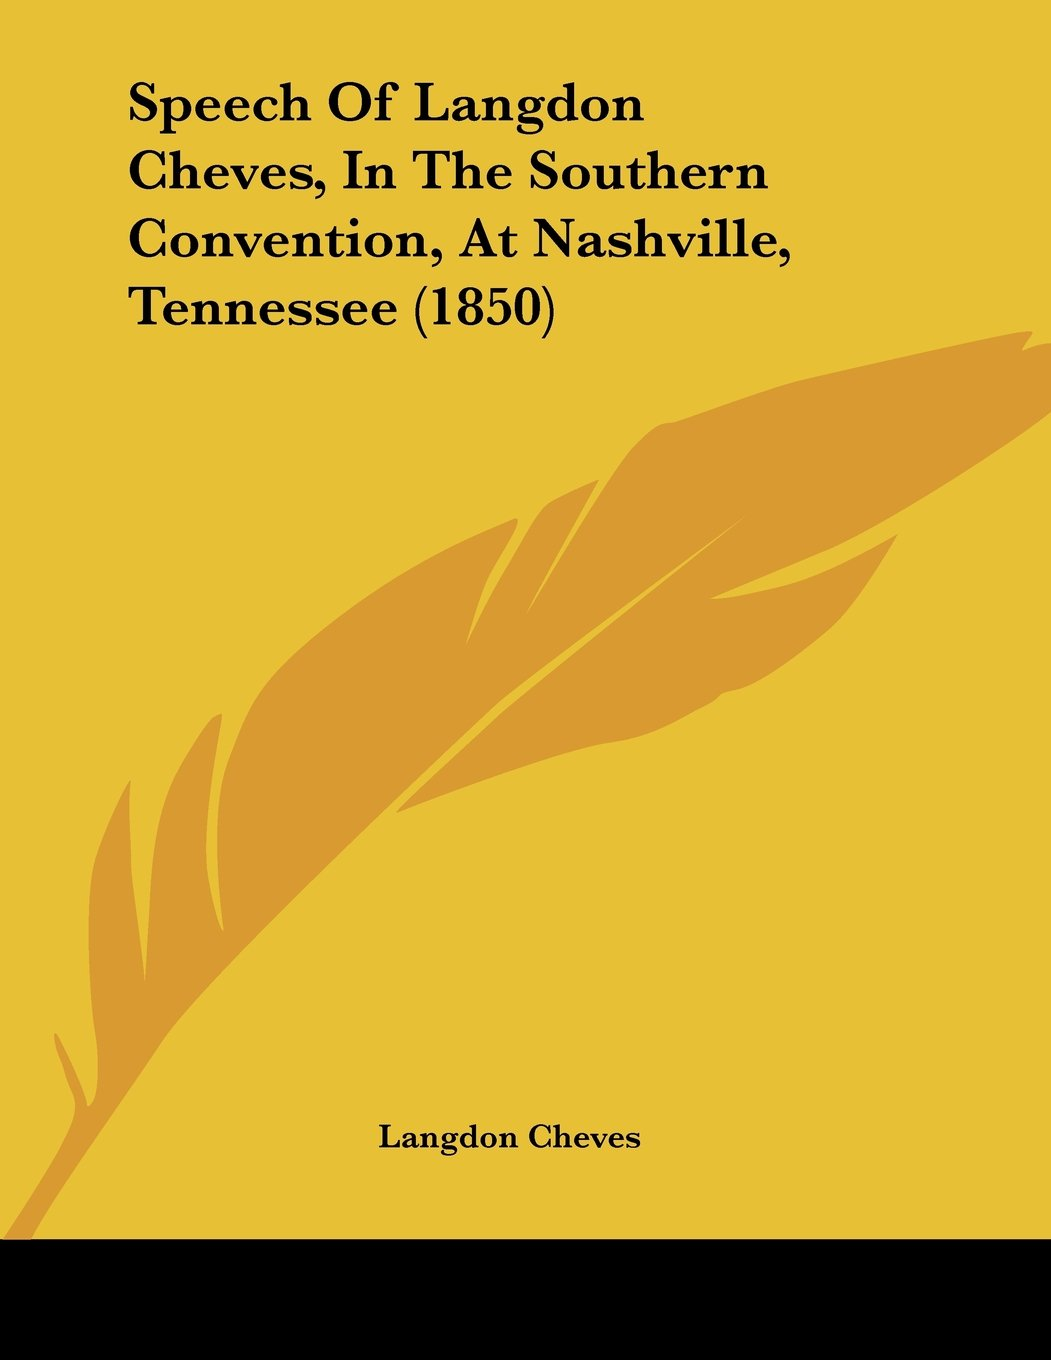 Amazon com: Speech Of Langdon Cheves, In The Southern